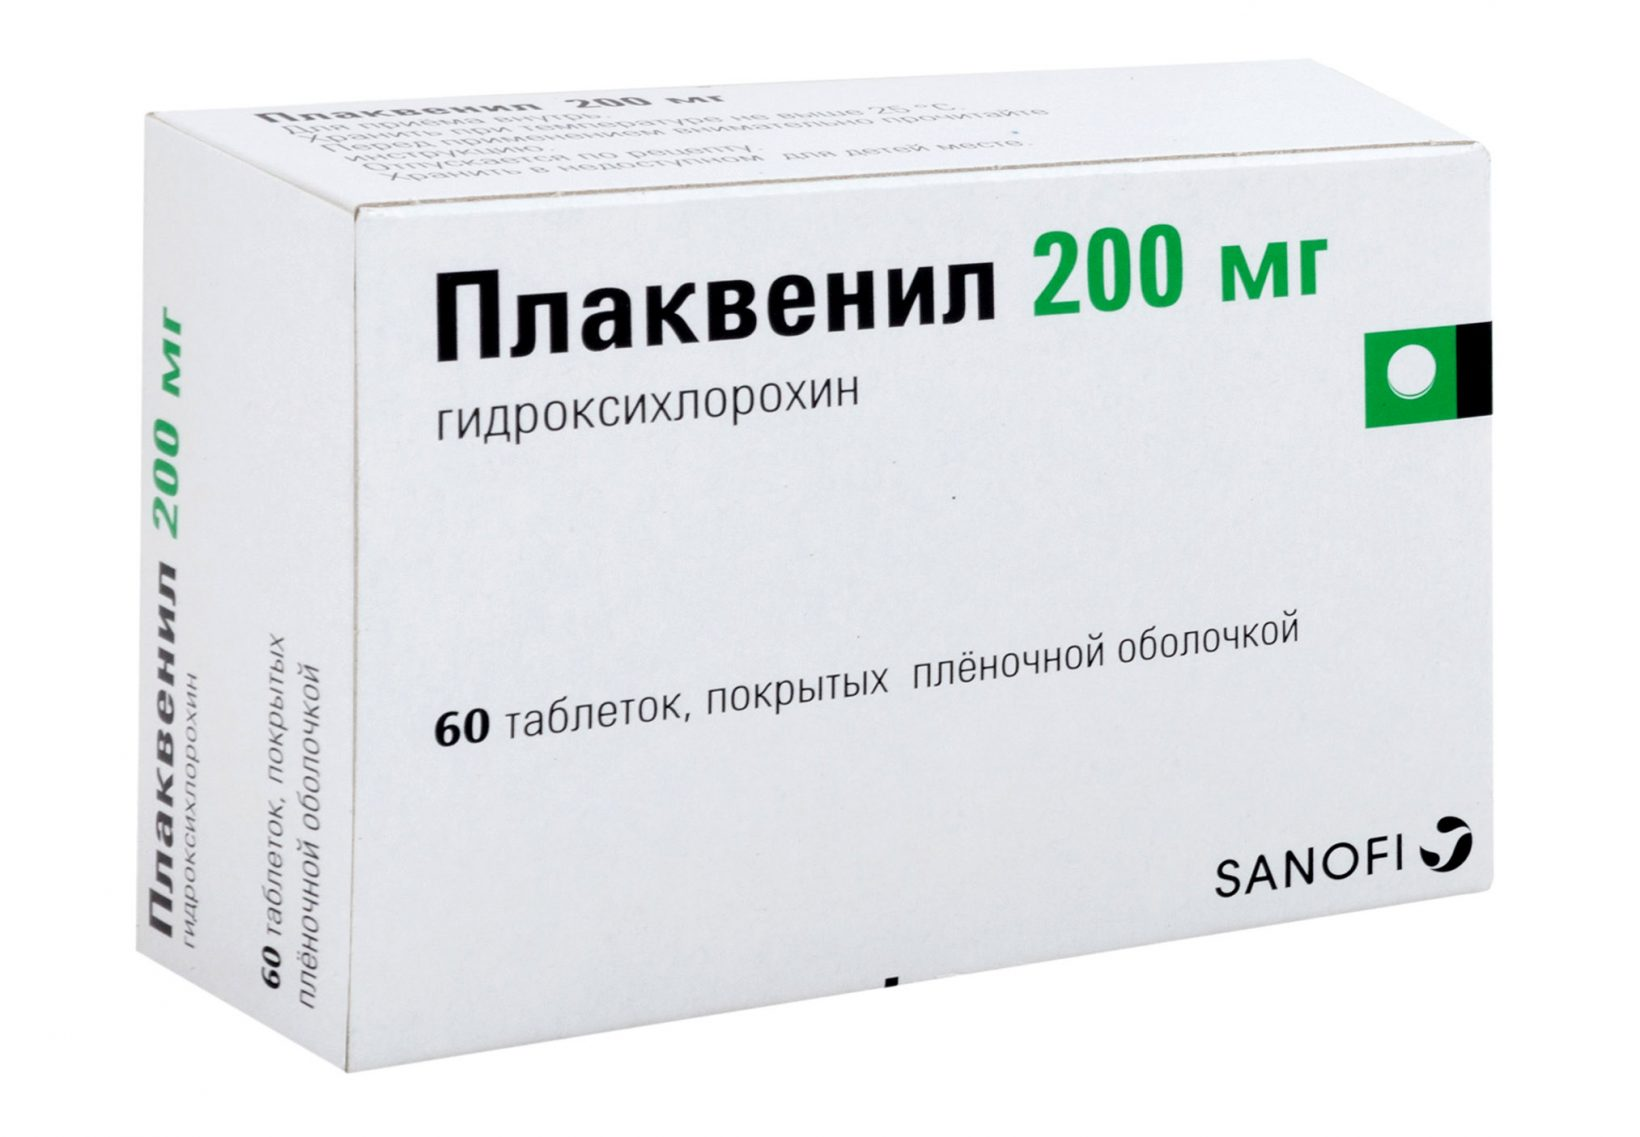 experts-believe:-to-argue-that-the-combination-of-hydroxychloroquine-and-azithromycin-cures-covid-19,-prematurely